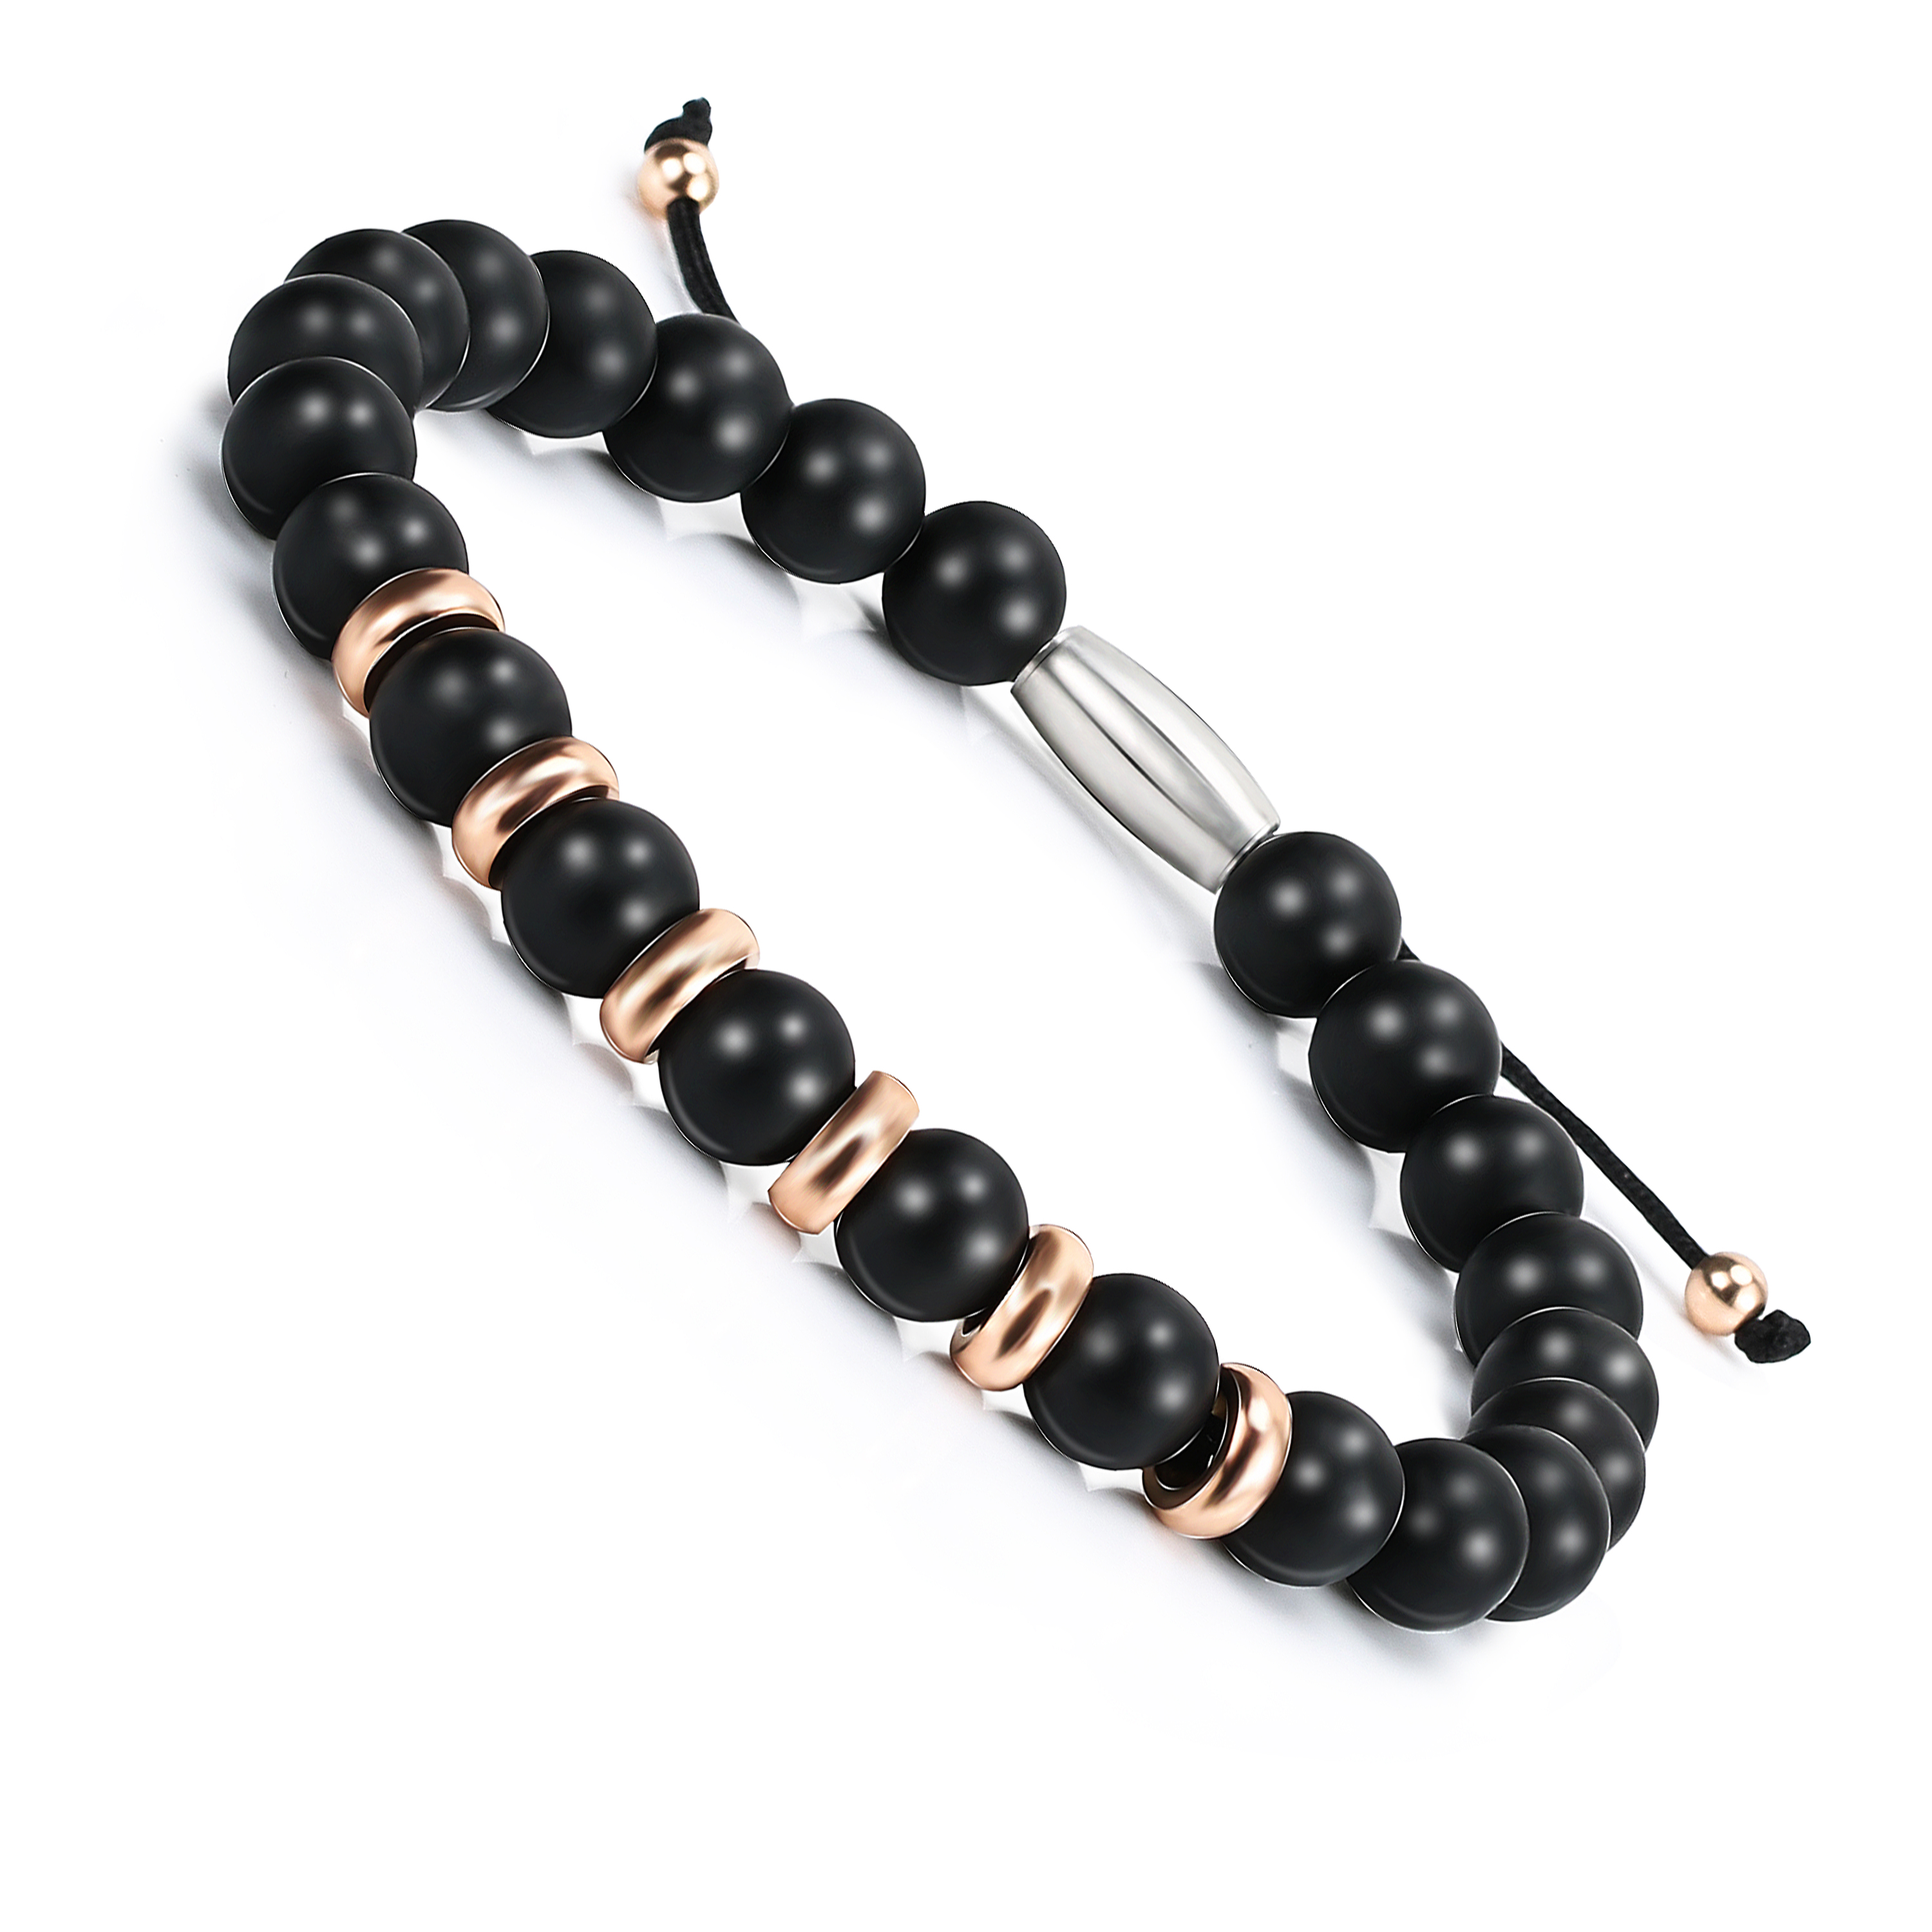 Fashion Bracelet Men Natural Agates Black Onyx Beads for Women&Mens Stainless Steel Charm Jewelry